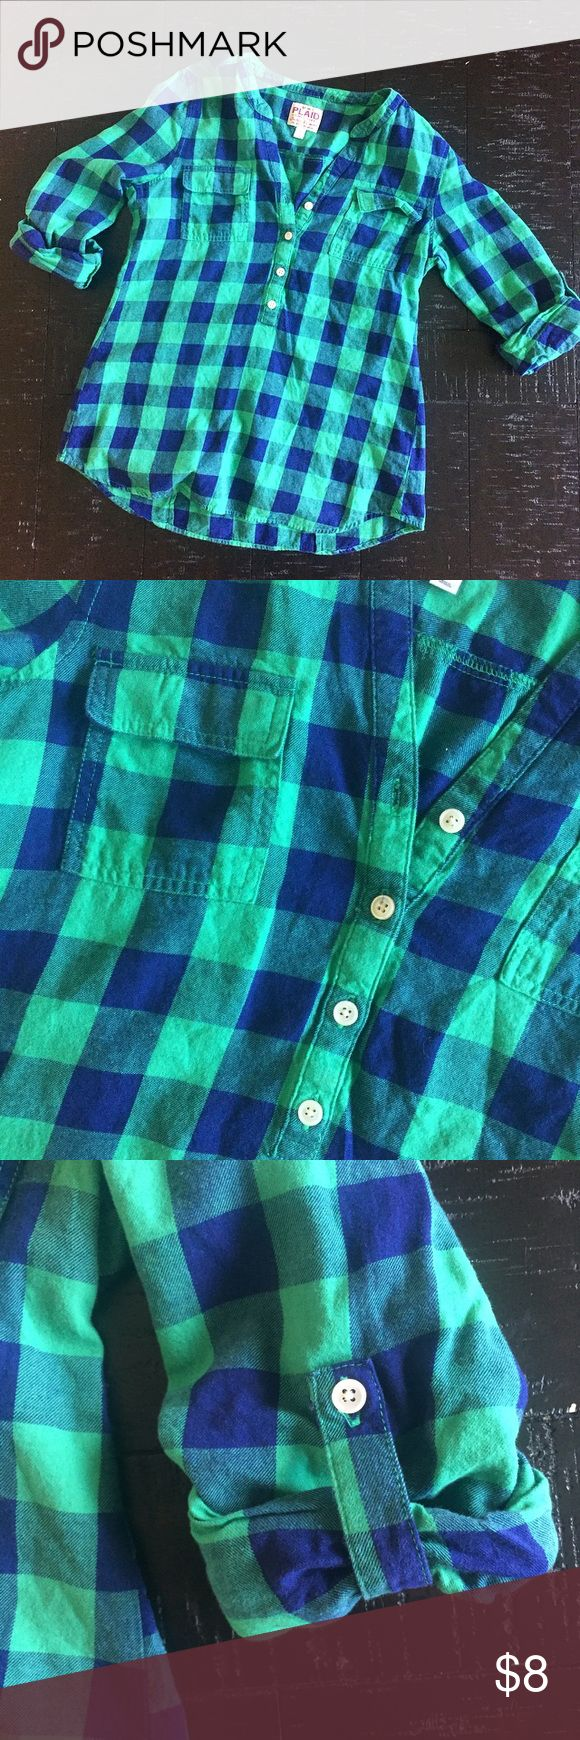 Blue Green Flannel Tunic Blue and green tunic. 3/4 length sleeves. Good condition. Worn a few times. Old Navy Tops Tunics